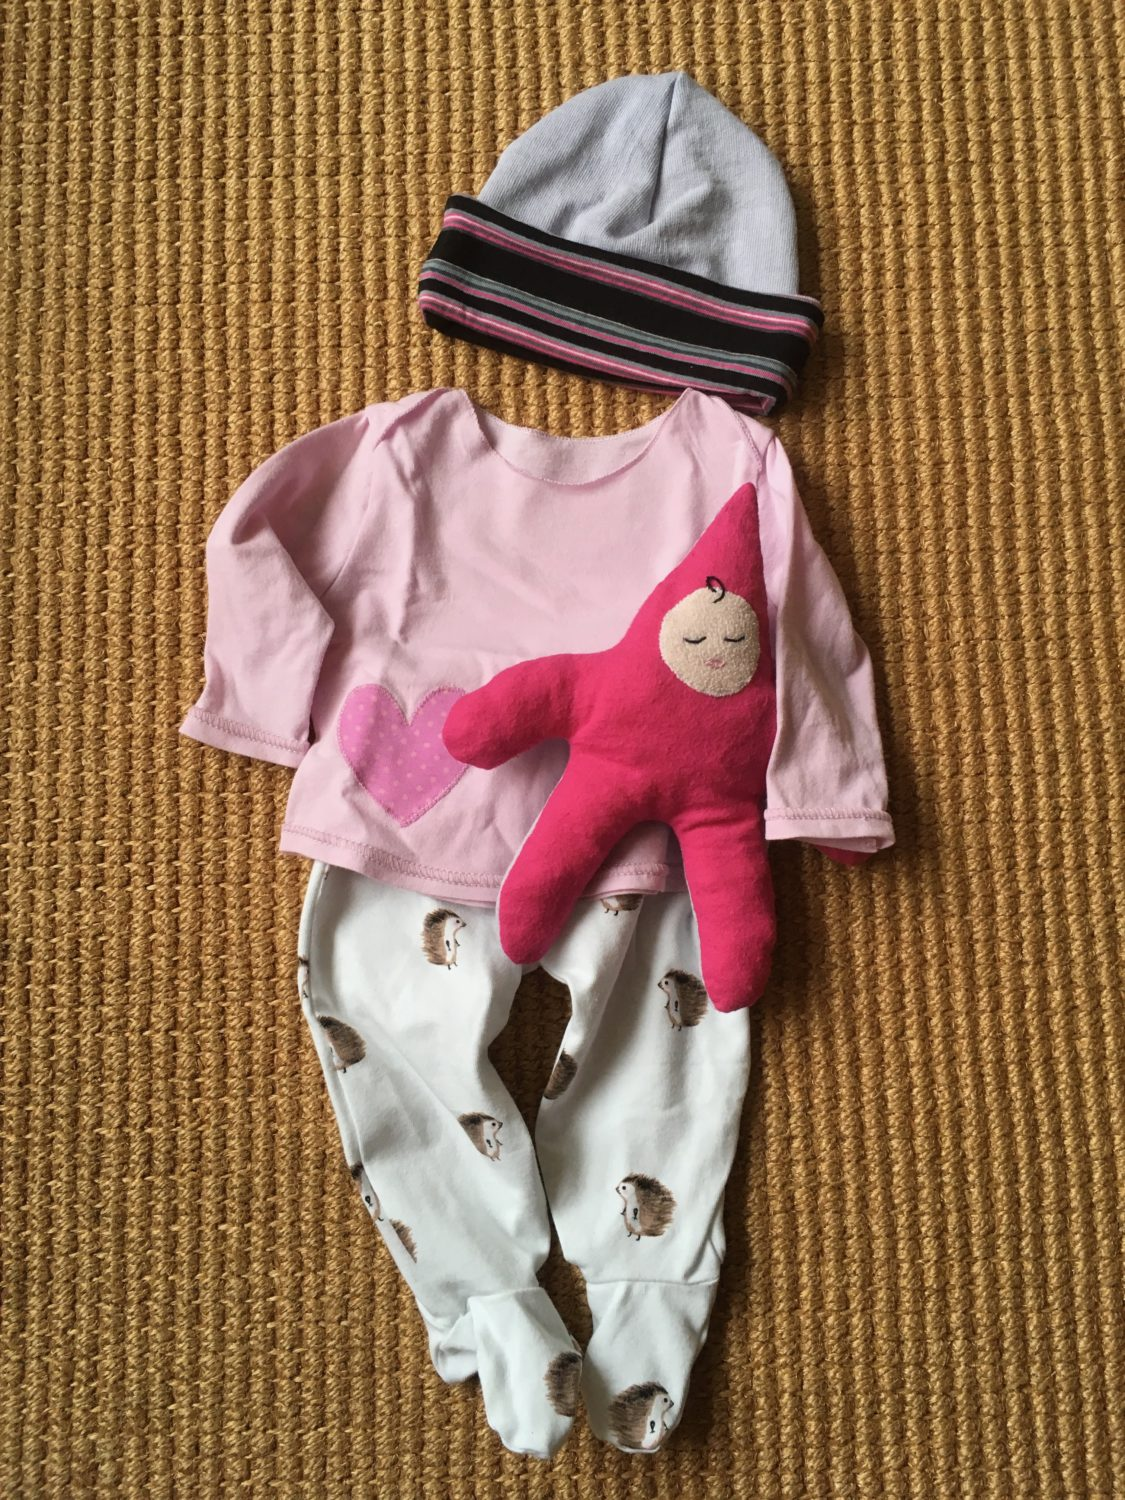 Two new homemade baby outfits